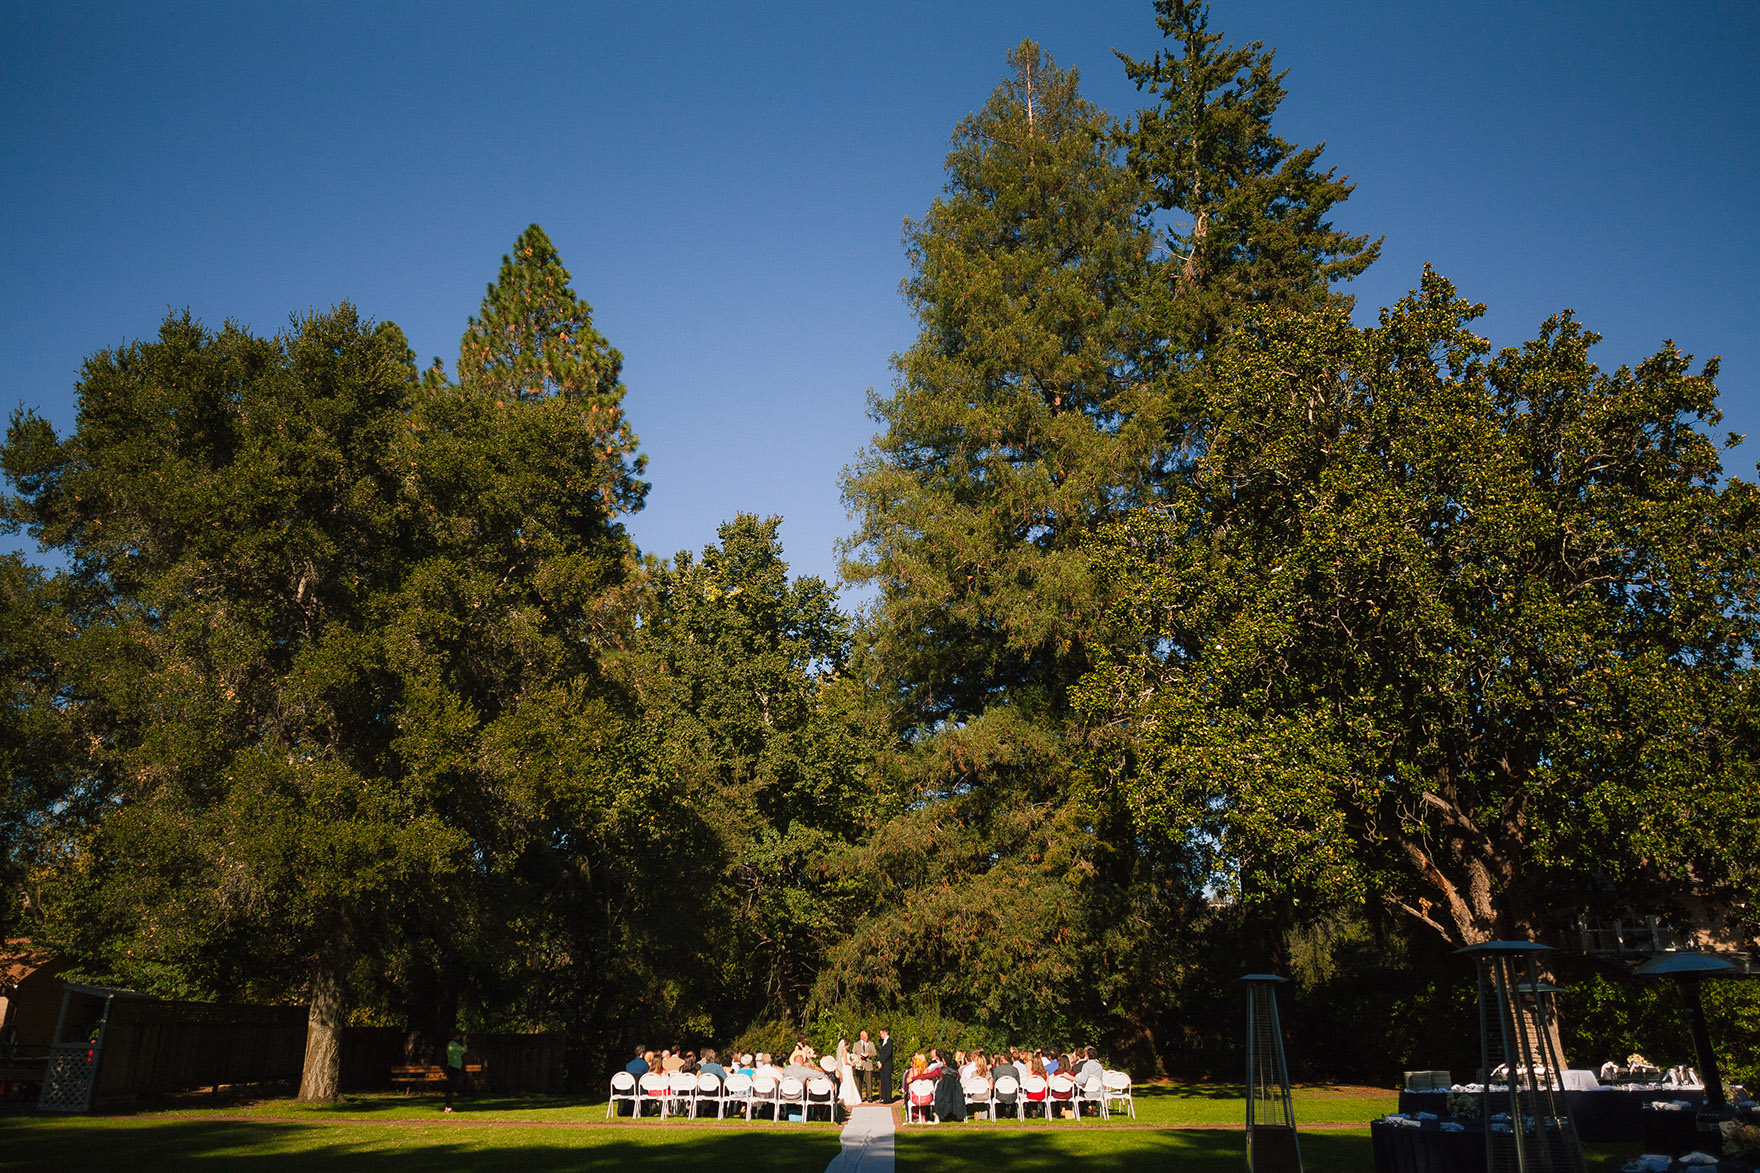 highlands park wedding ceremony takes place under the summer sun under the tall pine tree redwoods in the green open field lawn grass table settings blue table cloth white globe lights dangle from green lush trees with floral center pieces flowers waiting for the highlands park wedding reception to begin start at a highlands park wedding the perfect felton wedding venue santa cruz wedding venue redwood wedding venue santa cruz wedding photographer